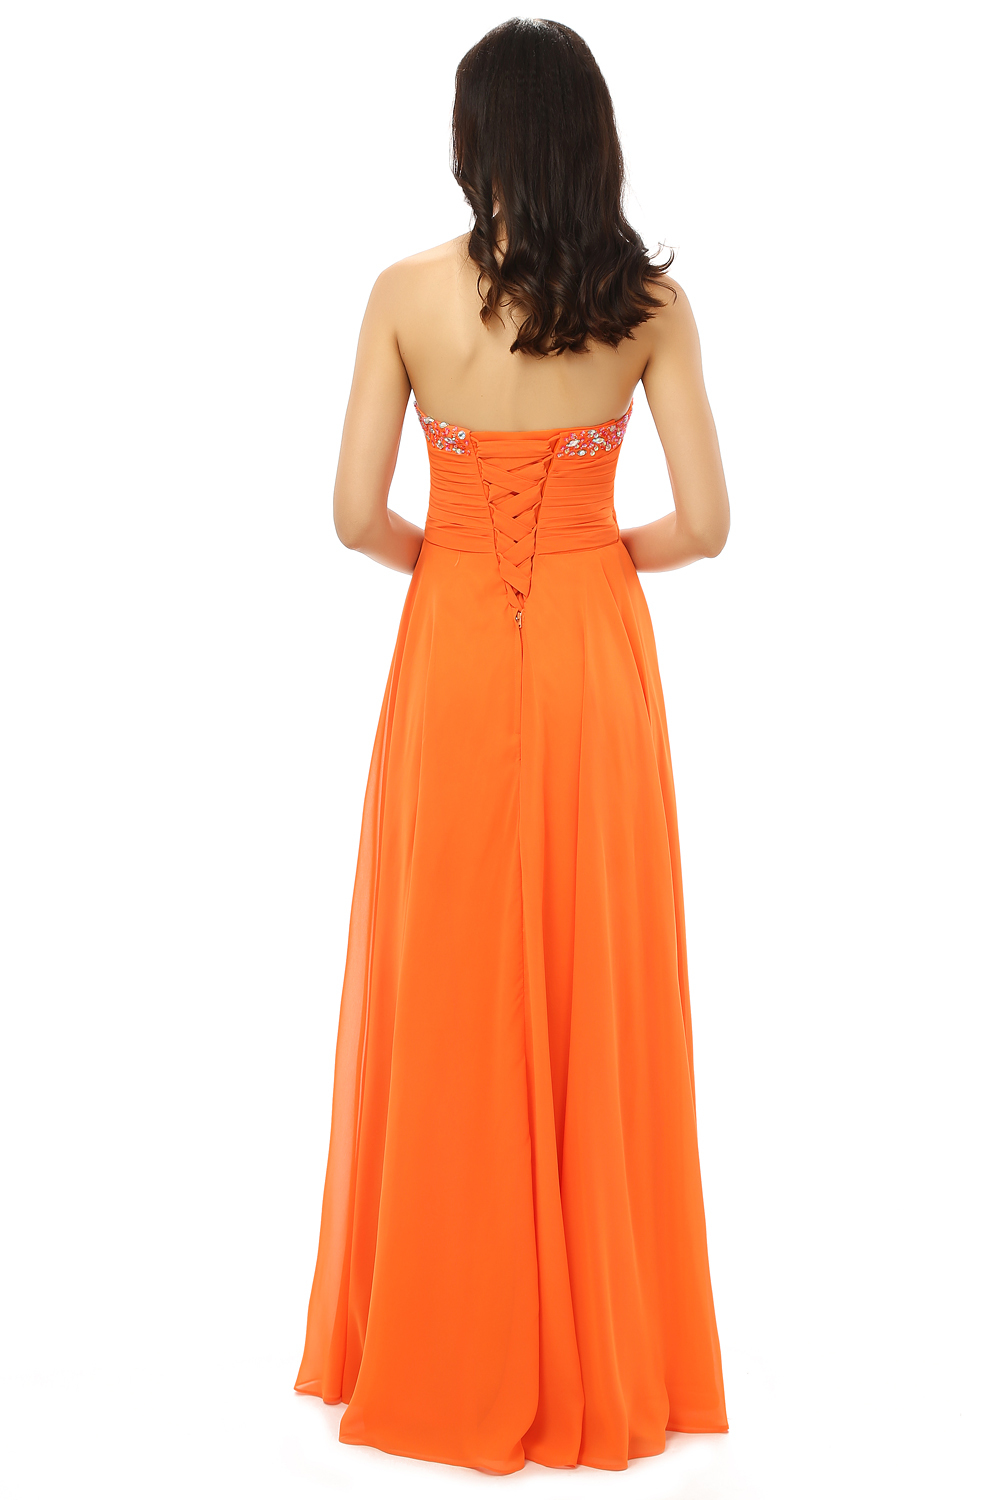 cheap plus size prom dresses women s cheap orange prom dresses gown long formal evening 1777